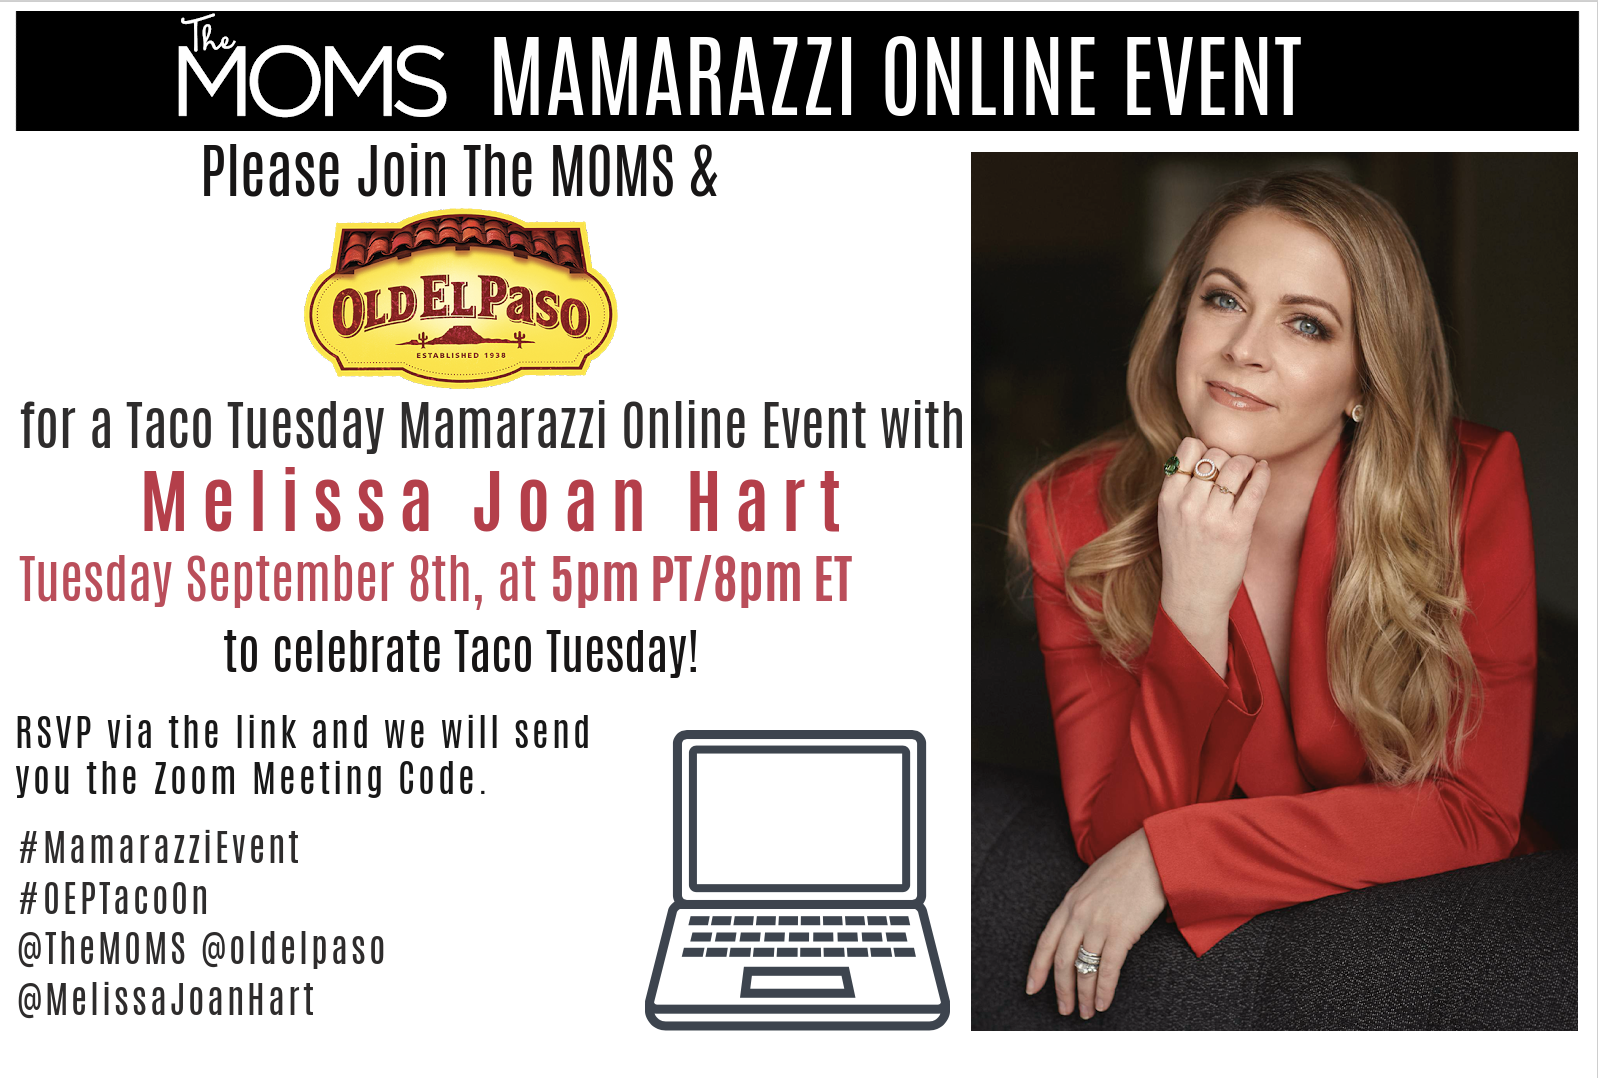 Mamarazzi Virtual Event with Melissa Joan Hart and Old El Paso